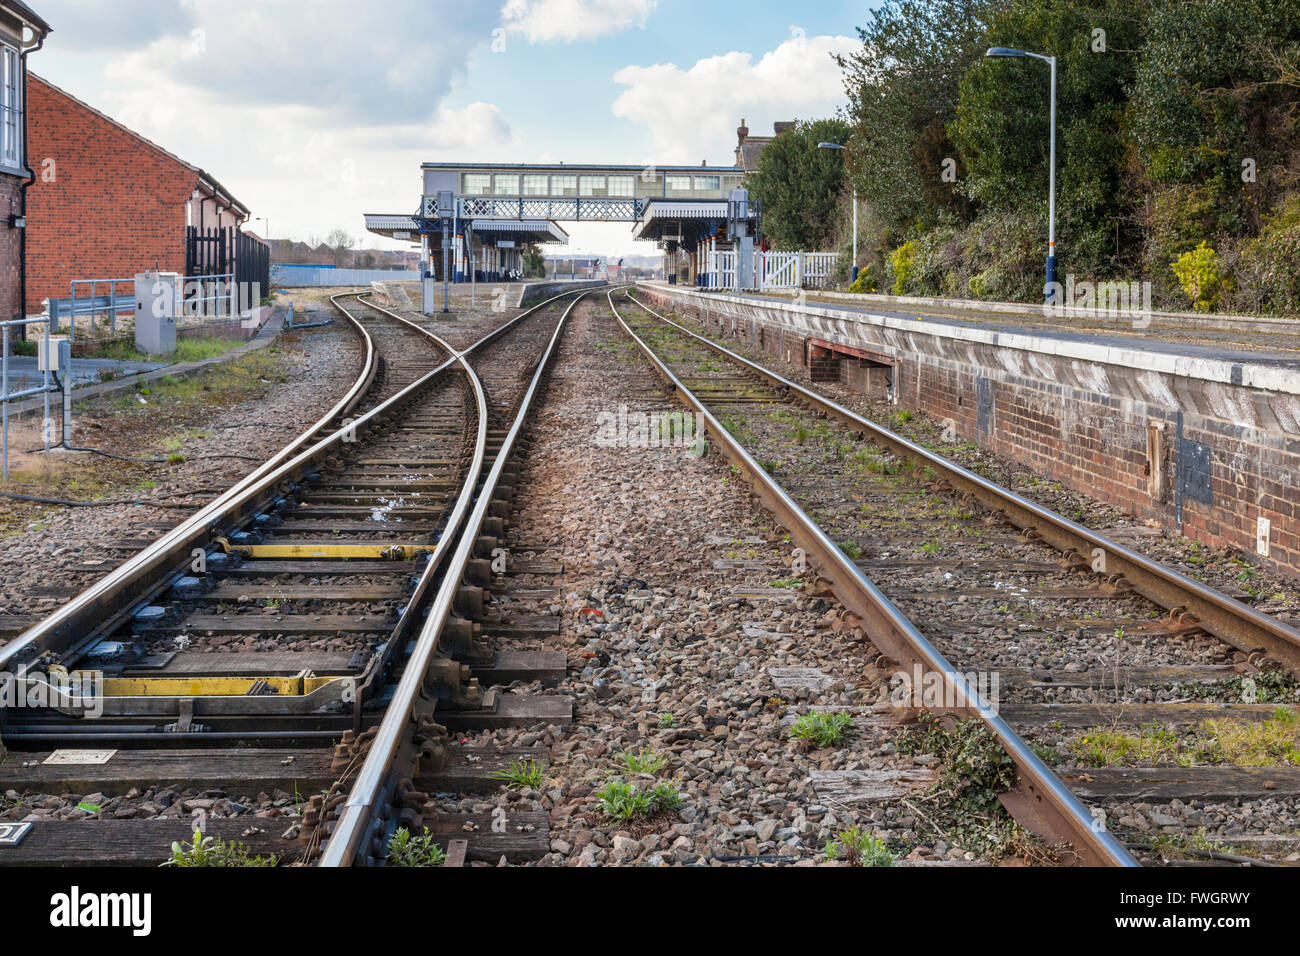 Railway lines on the approach to Sleaford Railway Station, Sleaford, Lincolnshire, England, UK - Stock Image